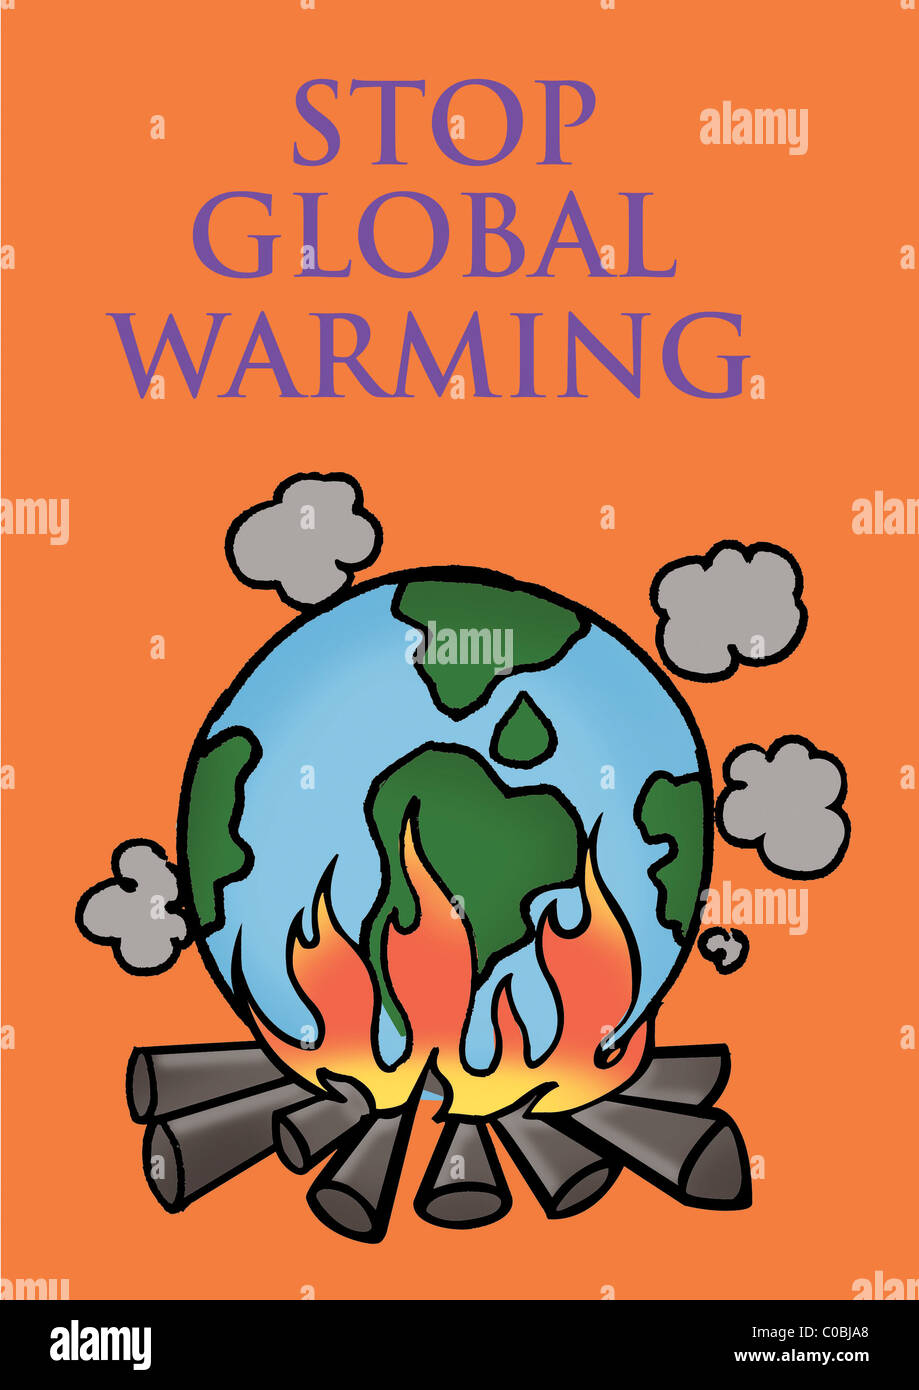 stop global warming stock photo: 34676608 - alamy